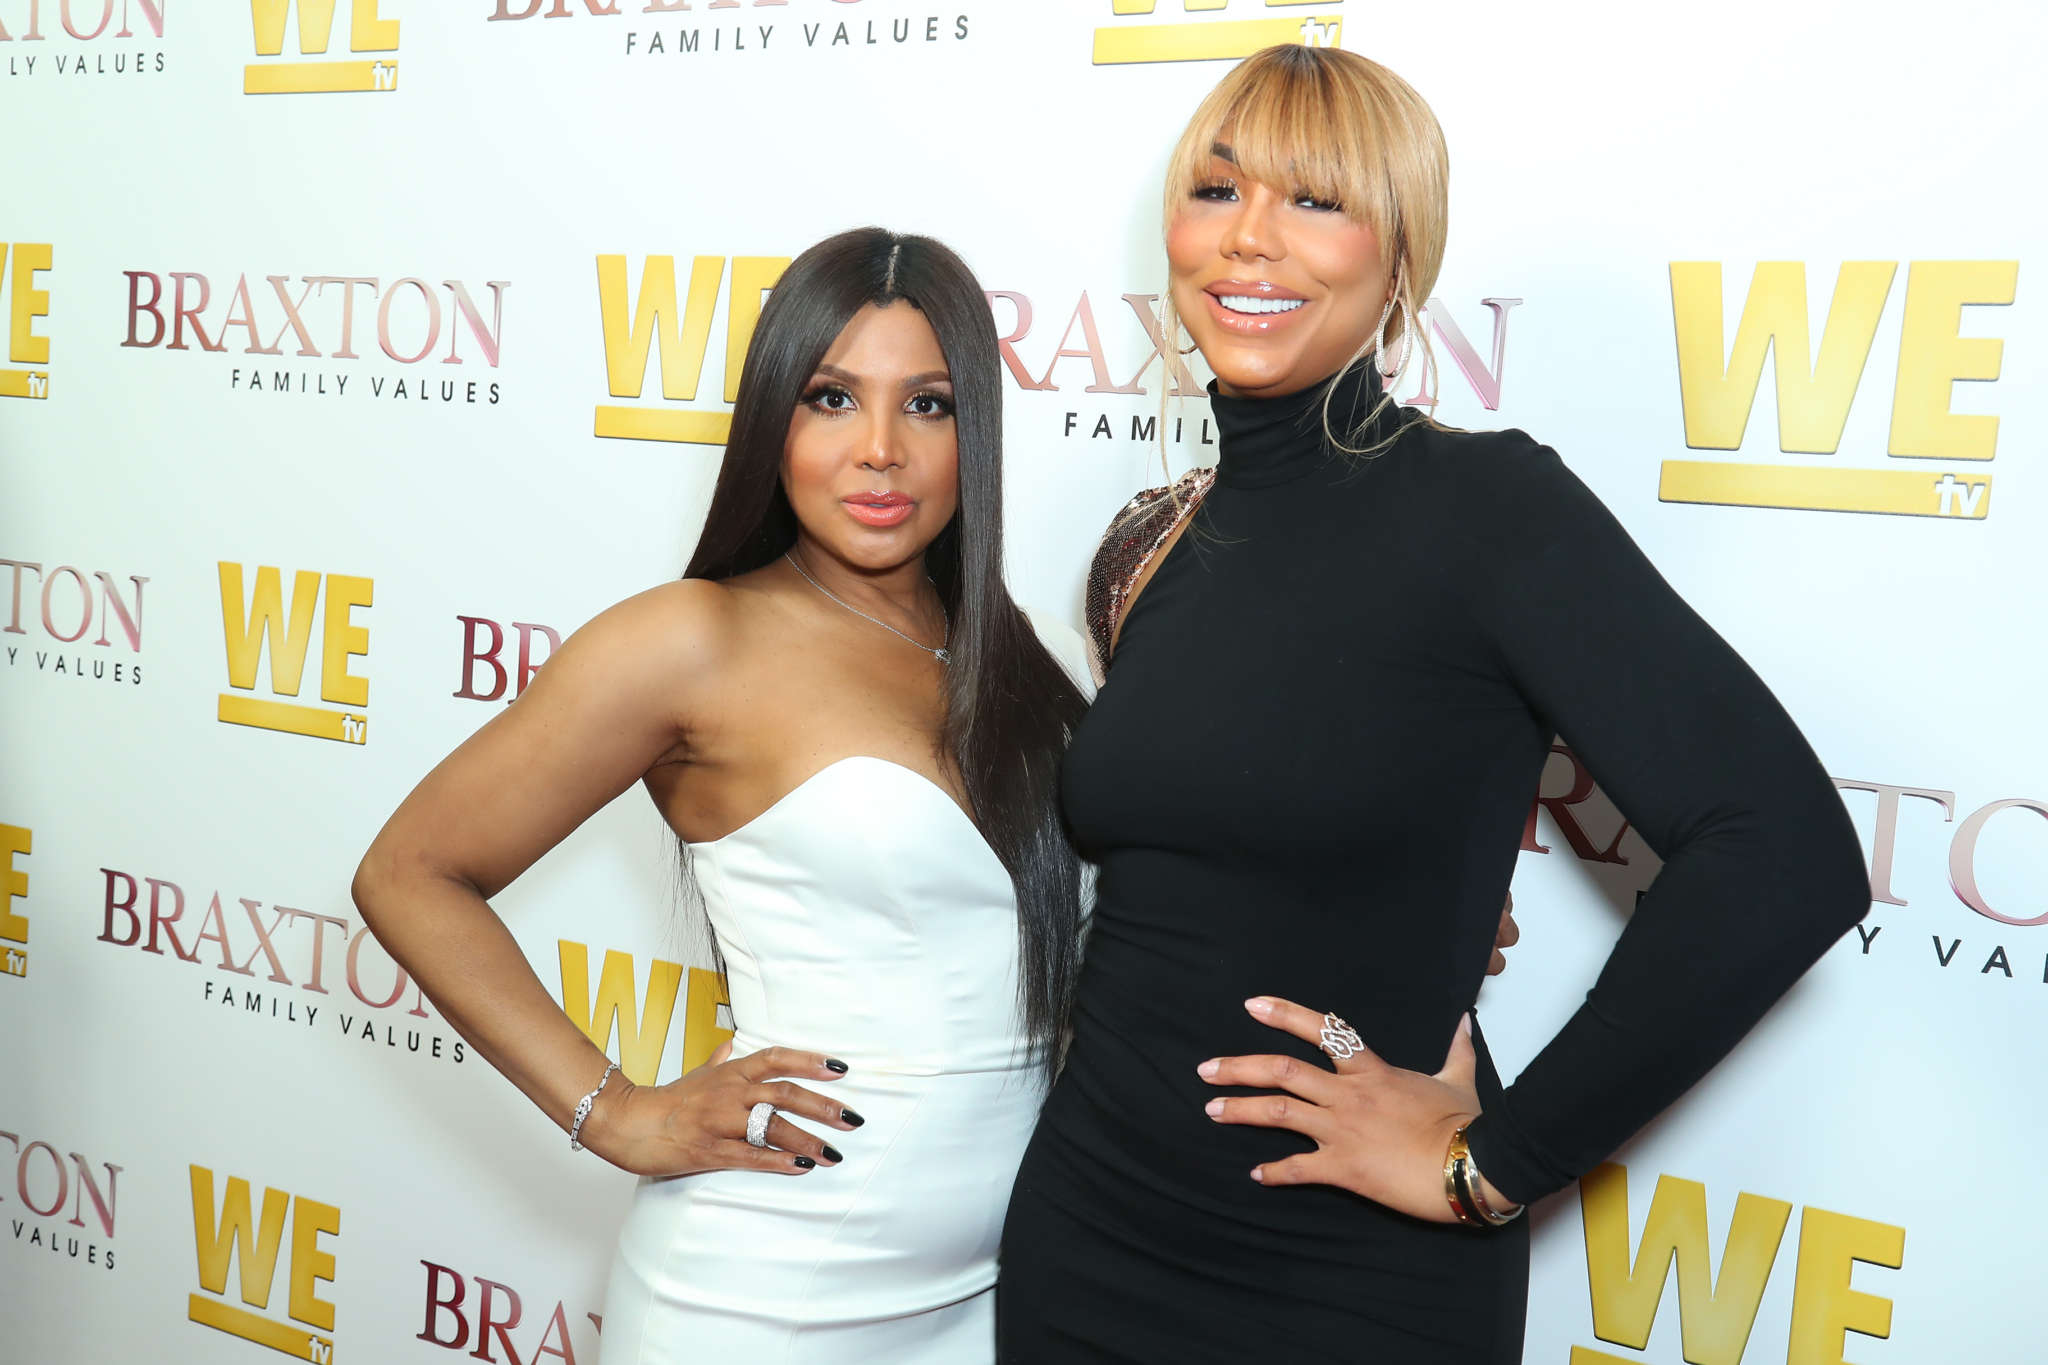 Tamar Braxton's Fans Praise Her Sister, Toni Braxton After She Poses In Lingerie: 'She Can't Be 52!' - NeNe Leakes Is Also Here For Toni's Beach Body